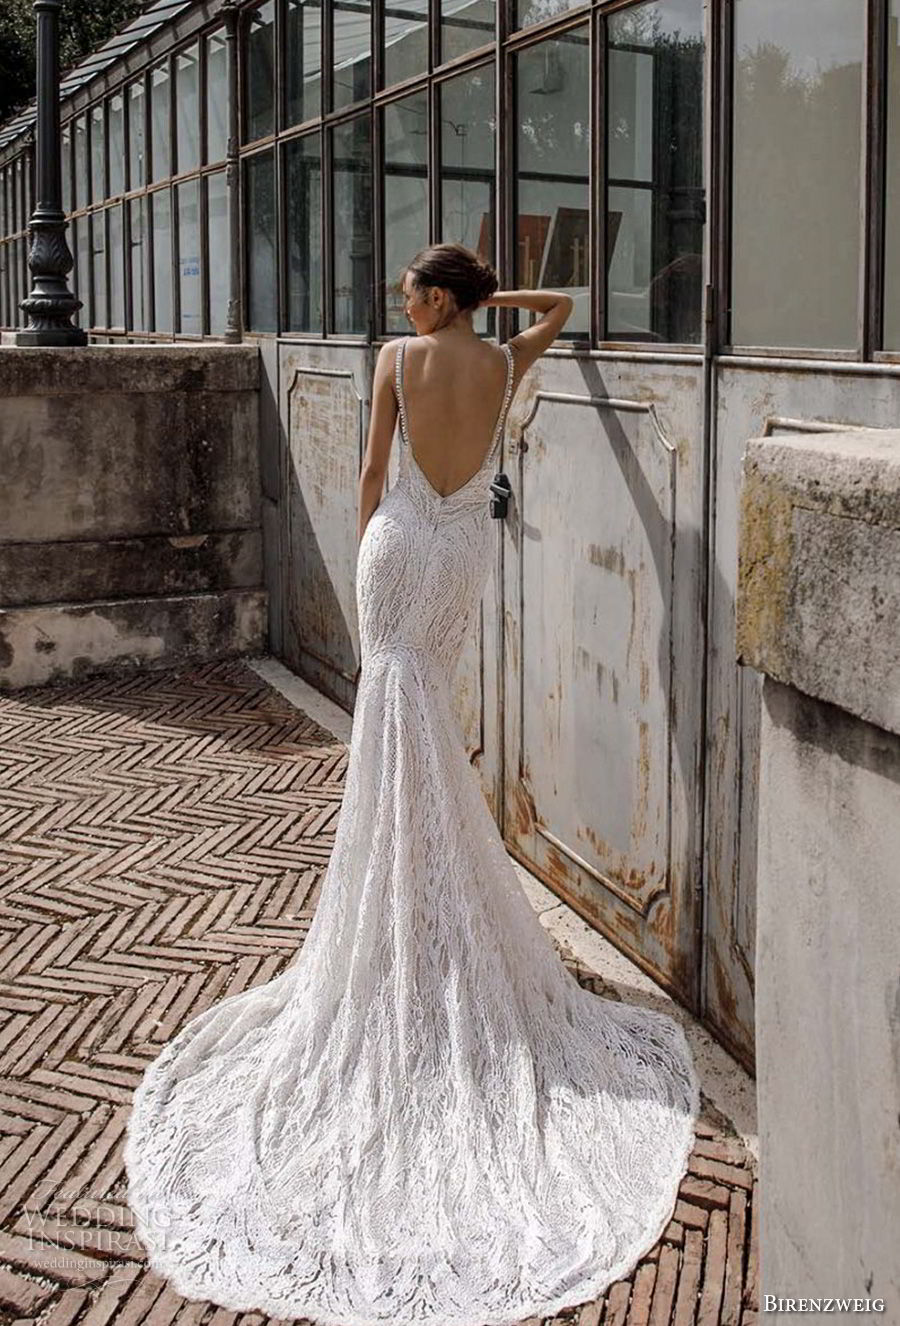 birenzweig 2018 bridal sleeveless spaghetti strap deep plunging sweetheart neckline elegant sexy fit and flare wedding dress open back chapel train (13) bv